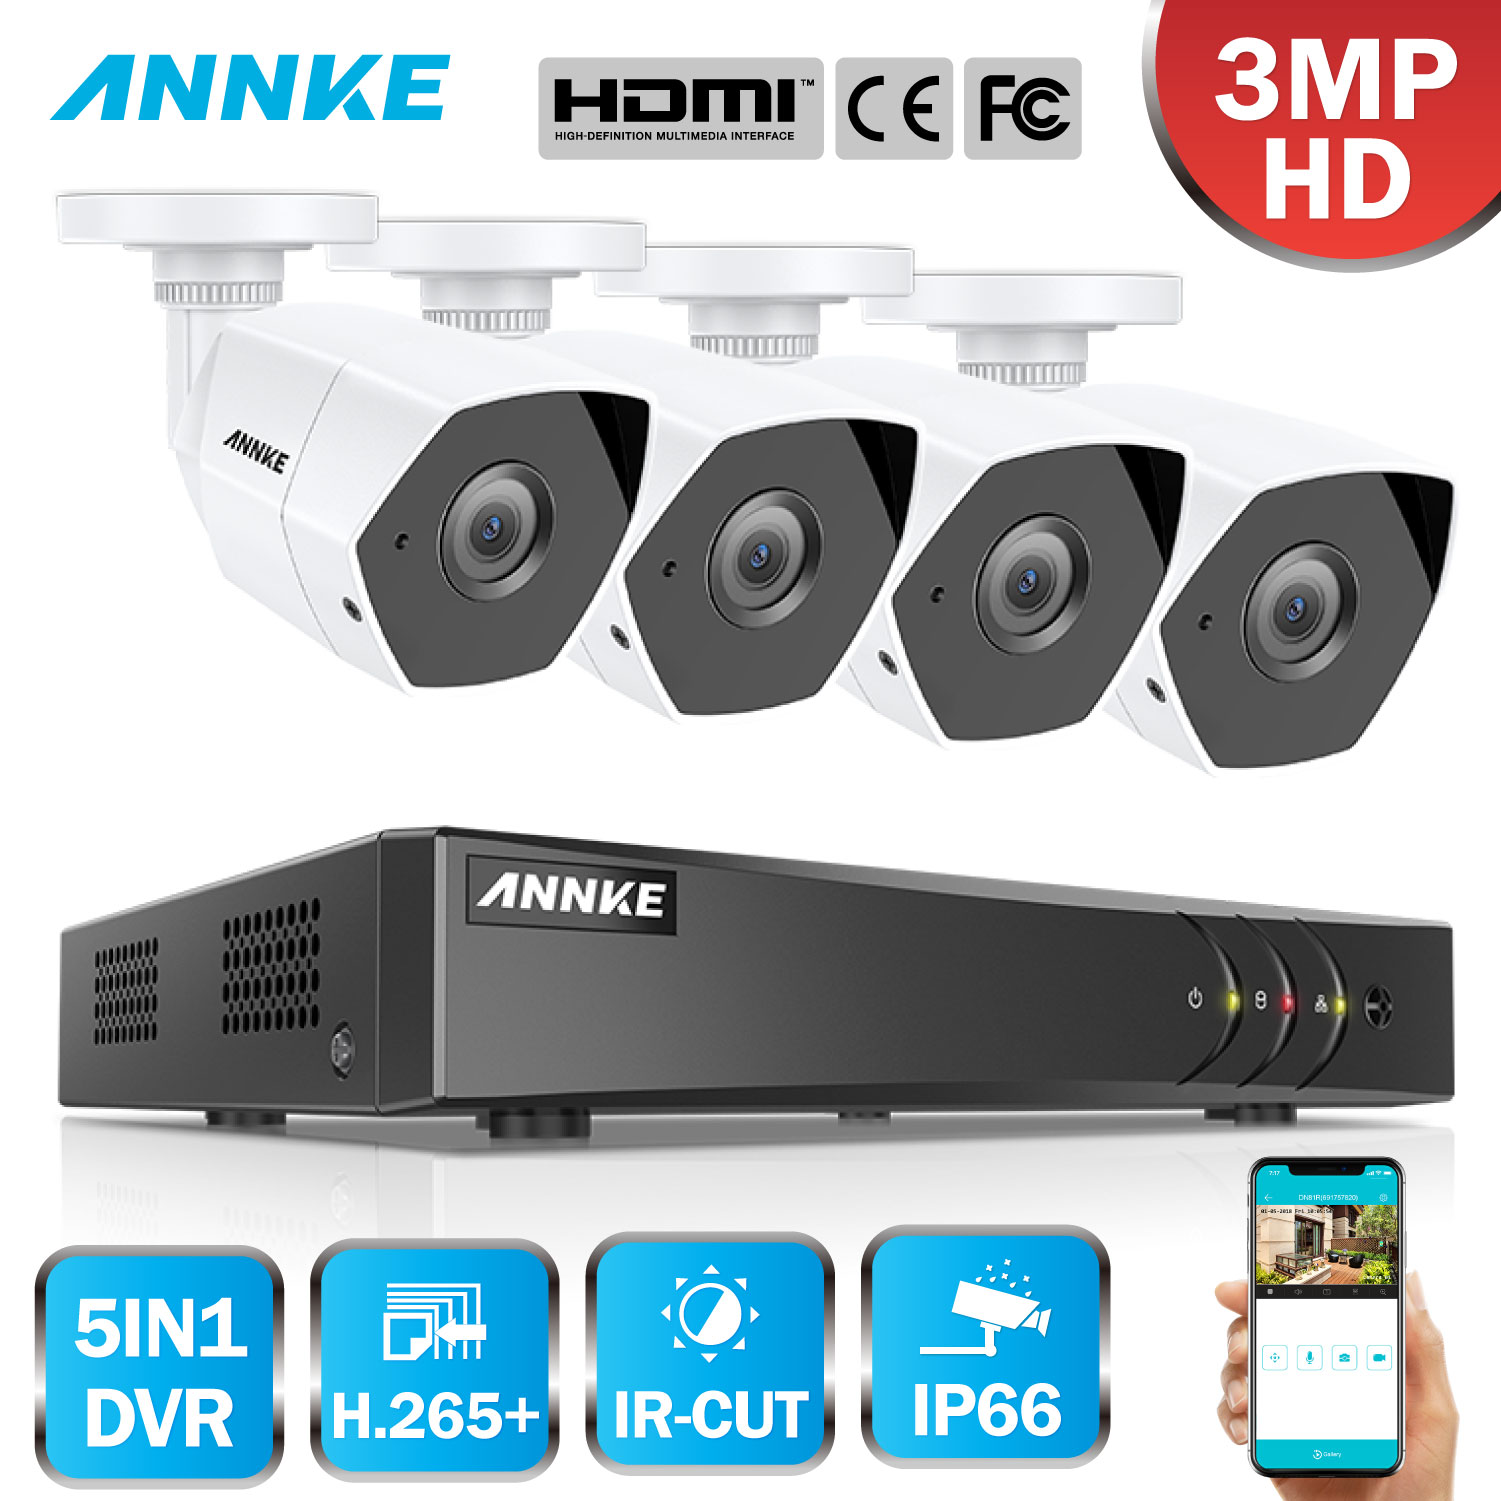 🛒 [HOT DEAL] | ANNKE Full HD 4CH AHD 3MP Home Outdoor CCTV System